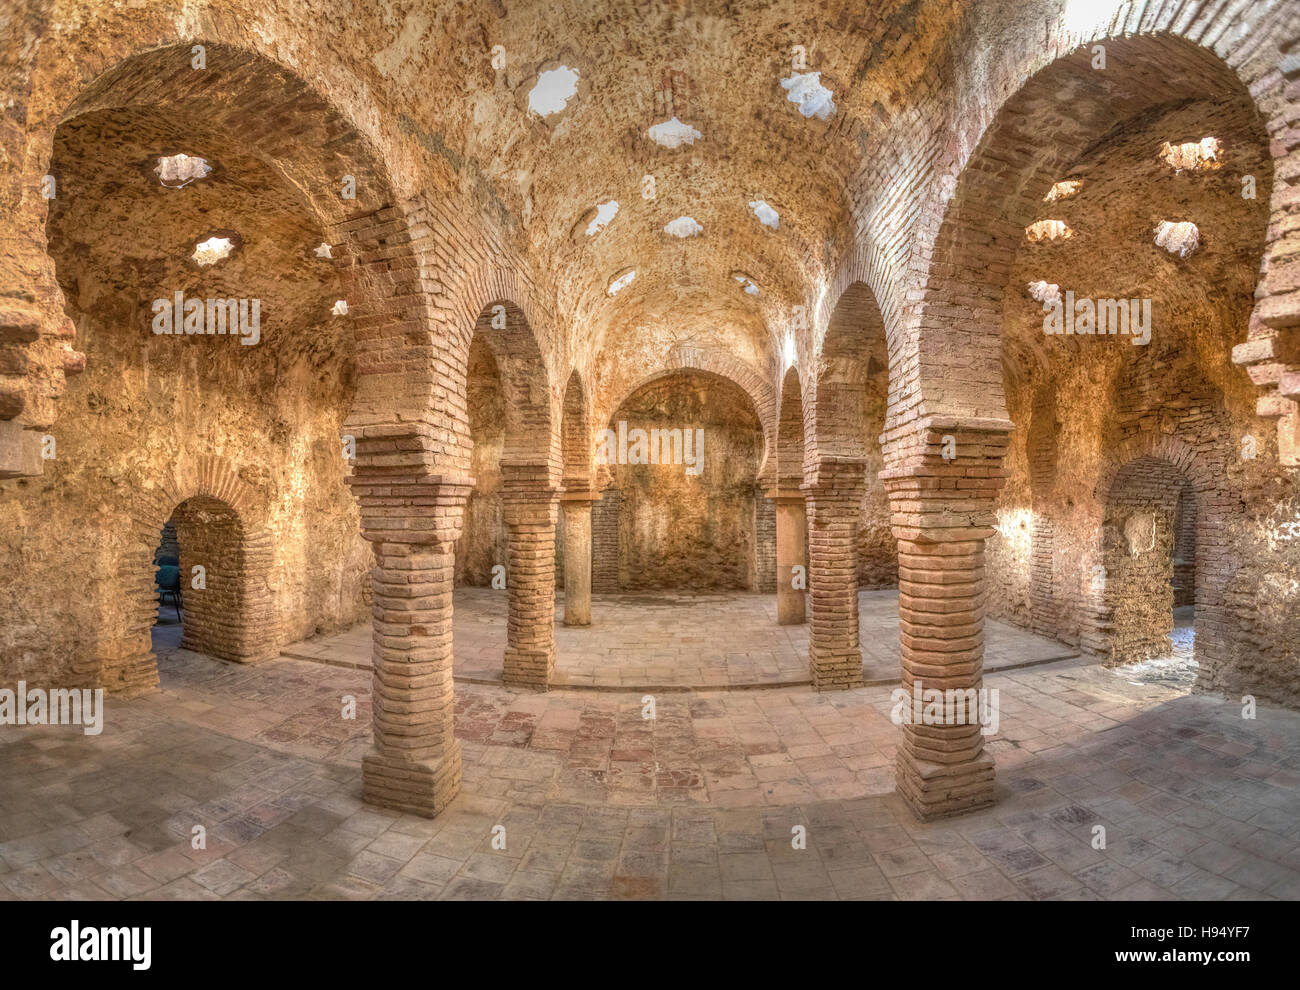 Arab baths built in XIII century, Ronda, Andalusia, Spain - Stock Image